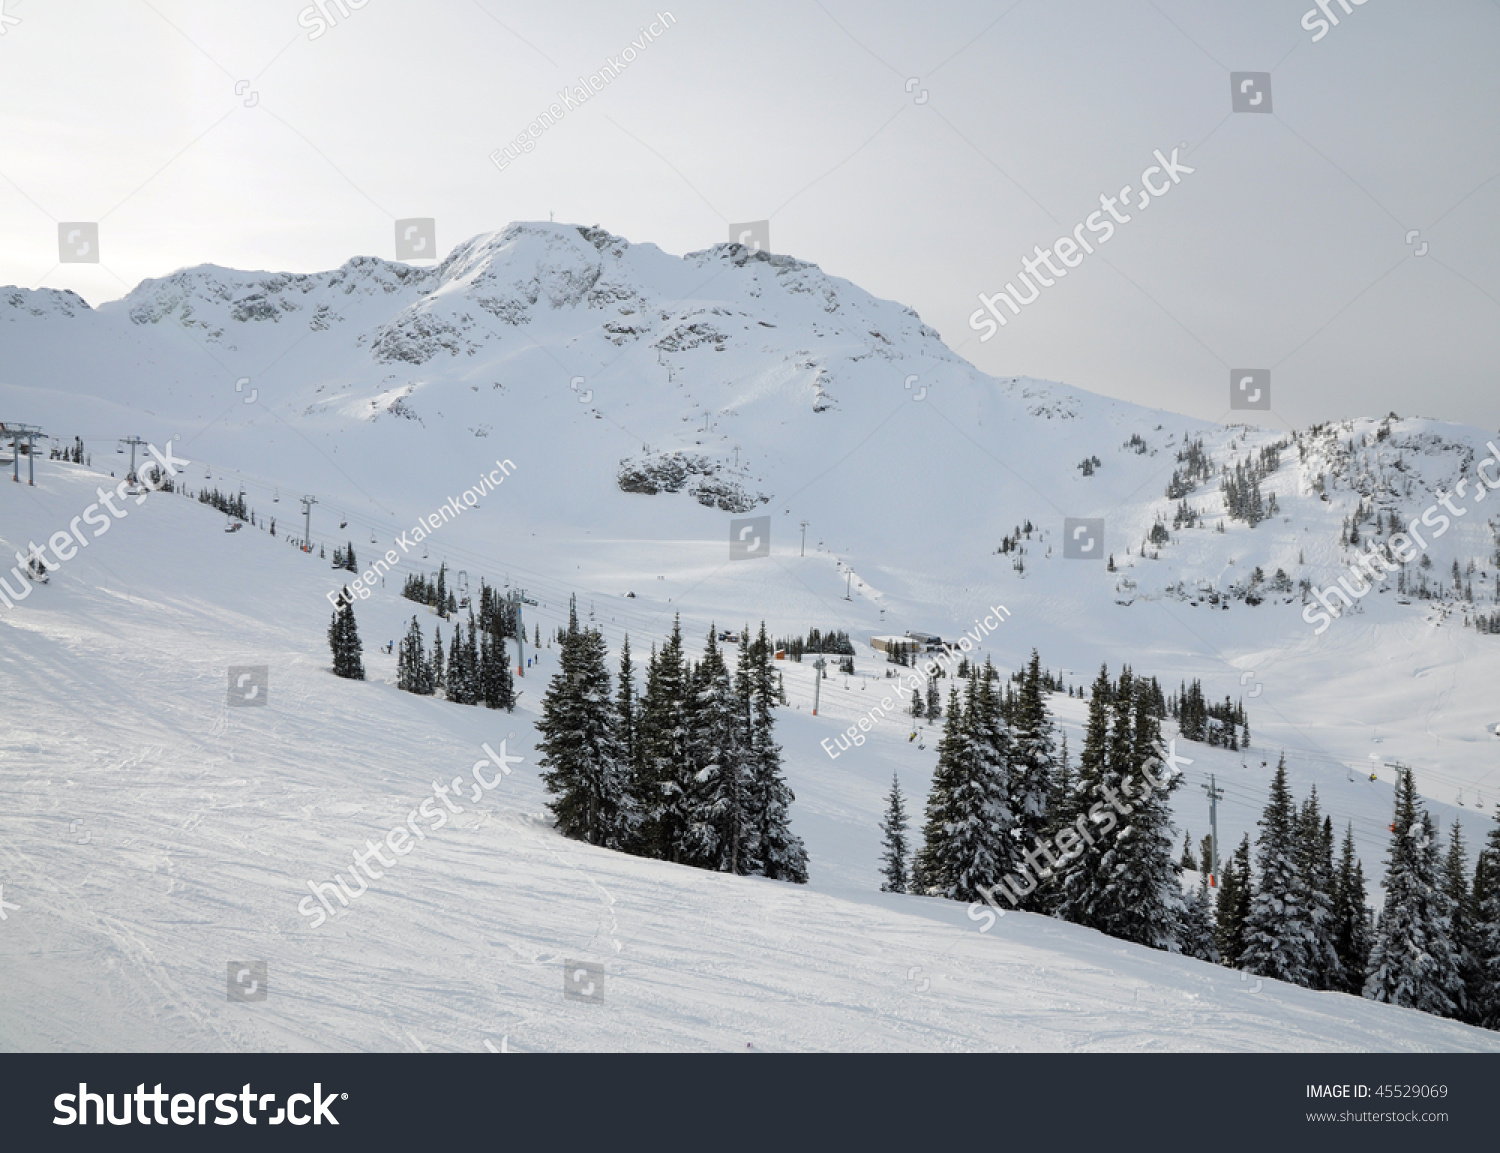 """Schedule&Cost Management— for """"Whistler Ski Resort Project"""""""